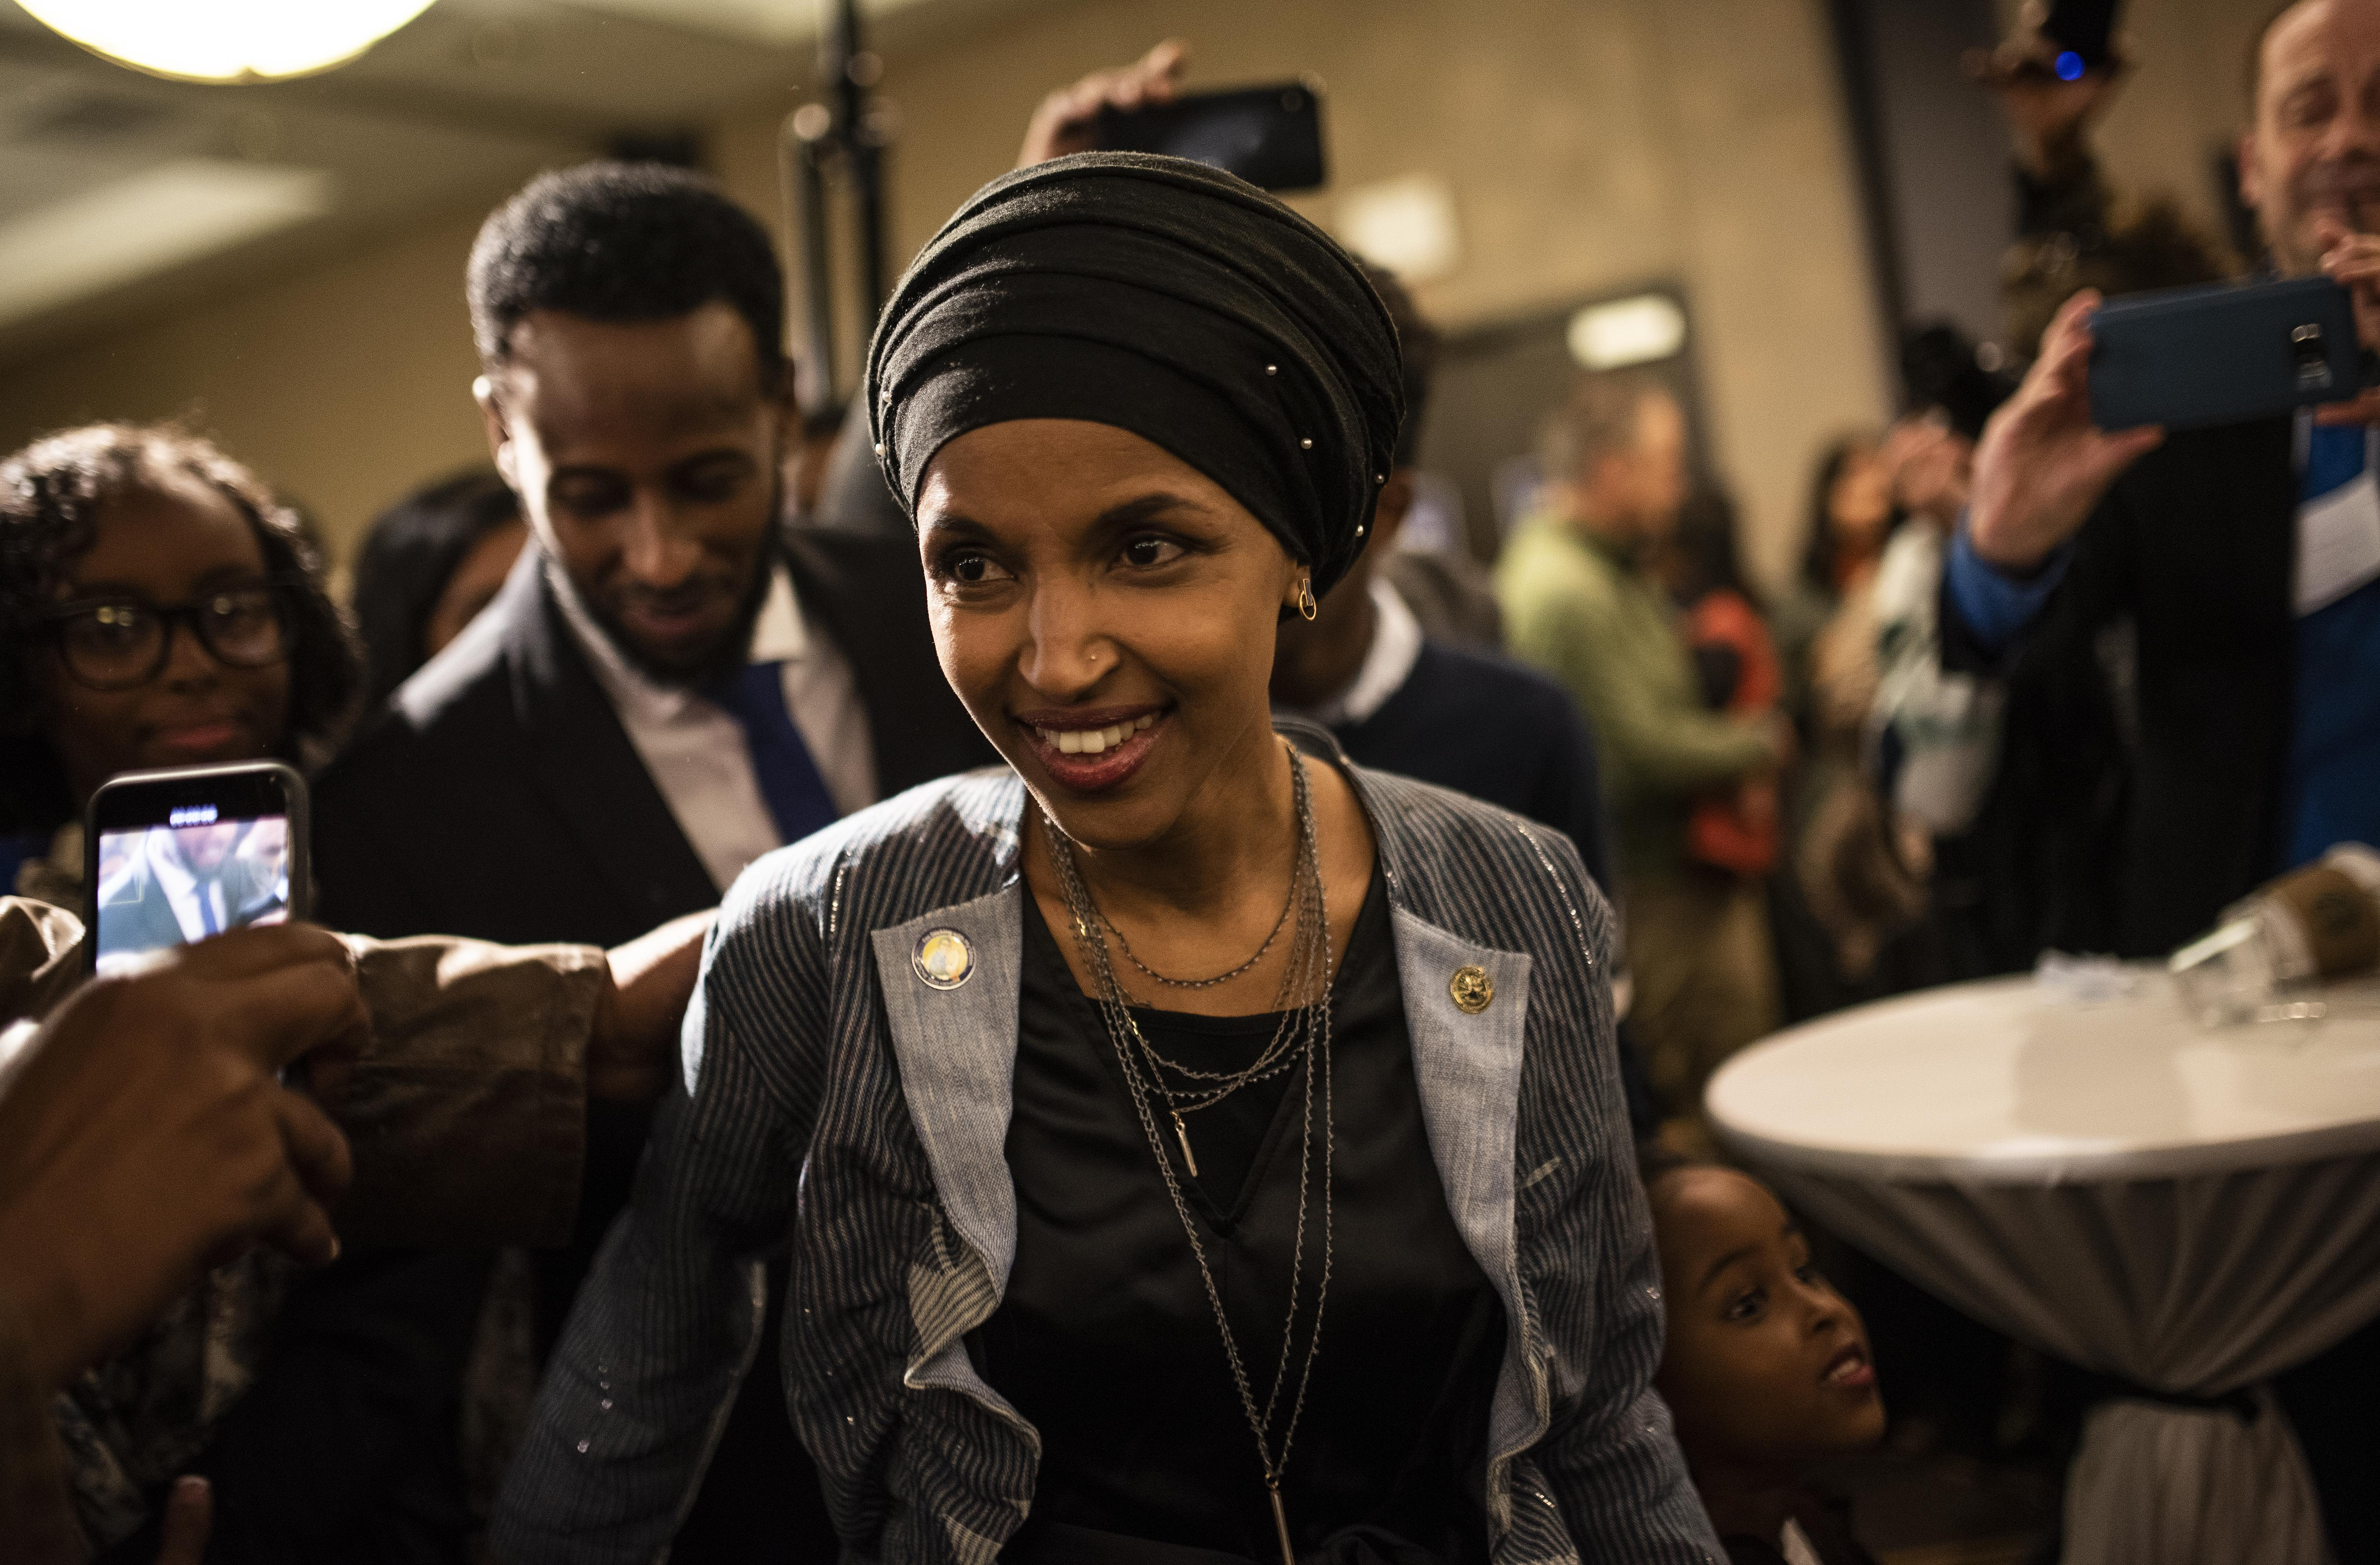 Who Is Ilhan Omar? Minnesota Congresswoman Draws Criticism ...